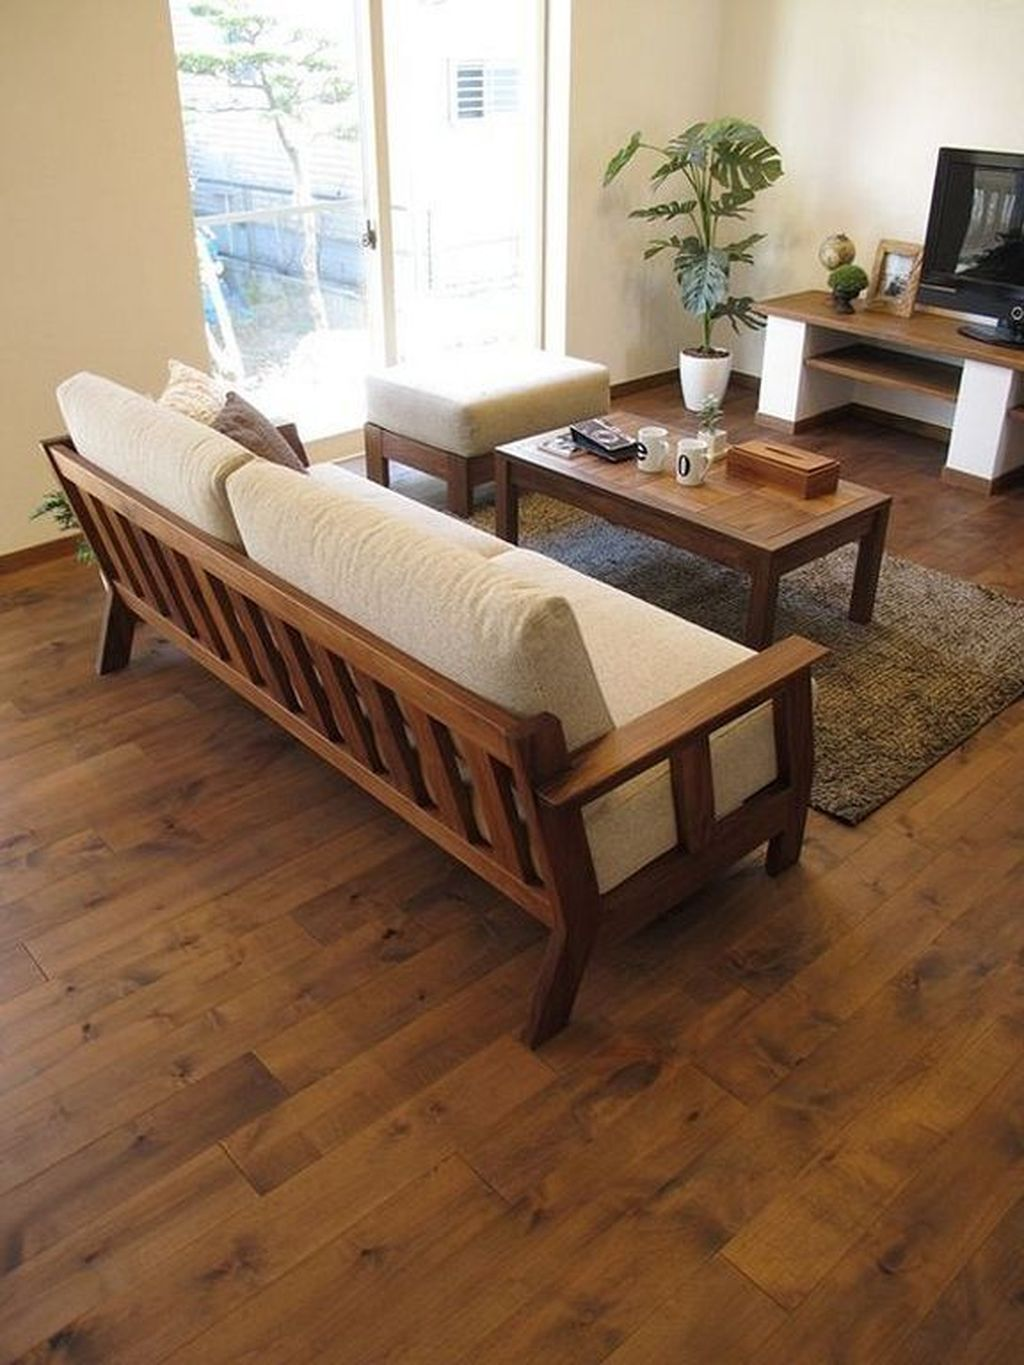 33 Awesome Wooden Furniture Design Ideas For Living Rooms